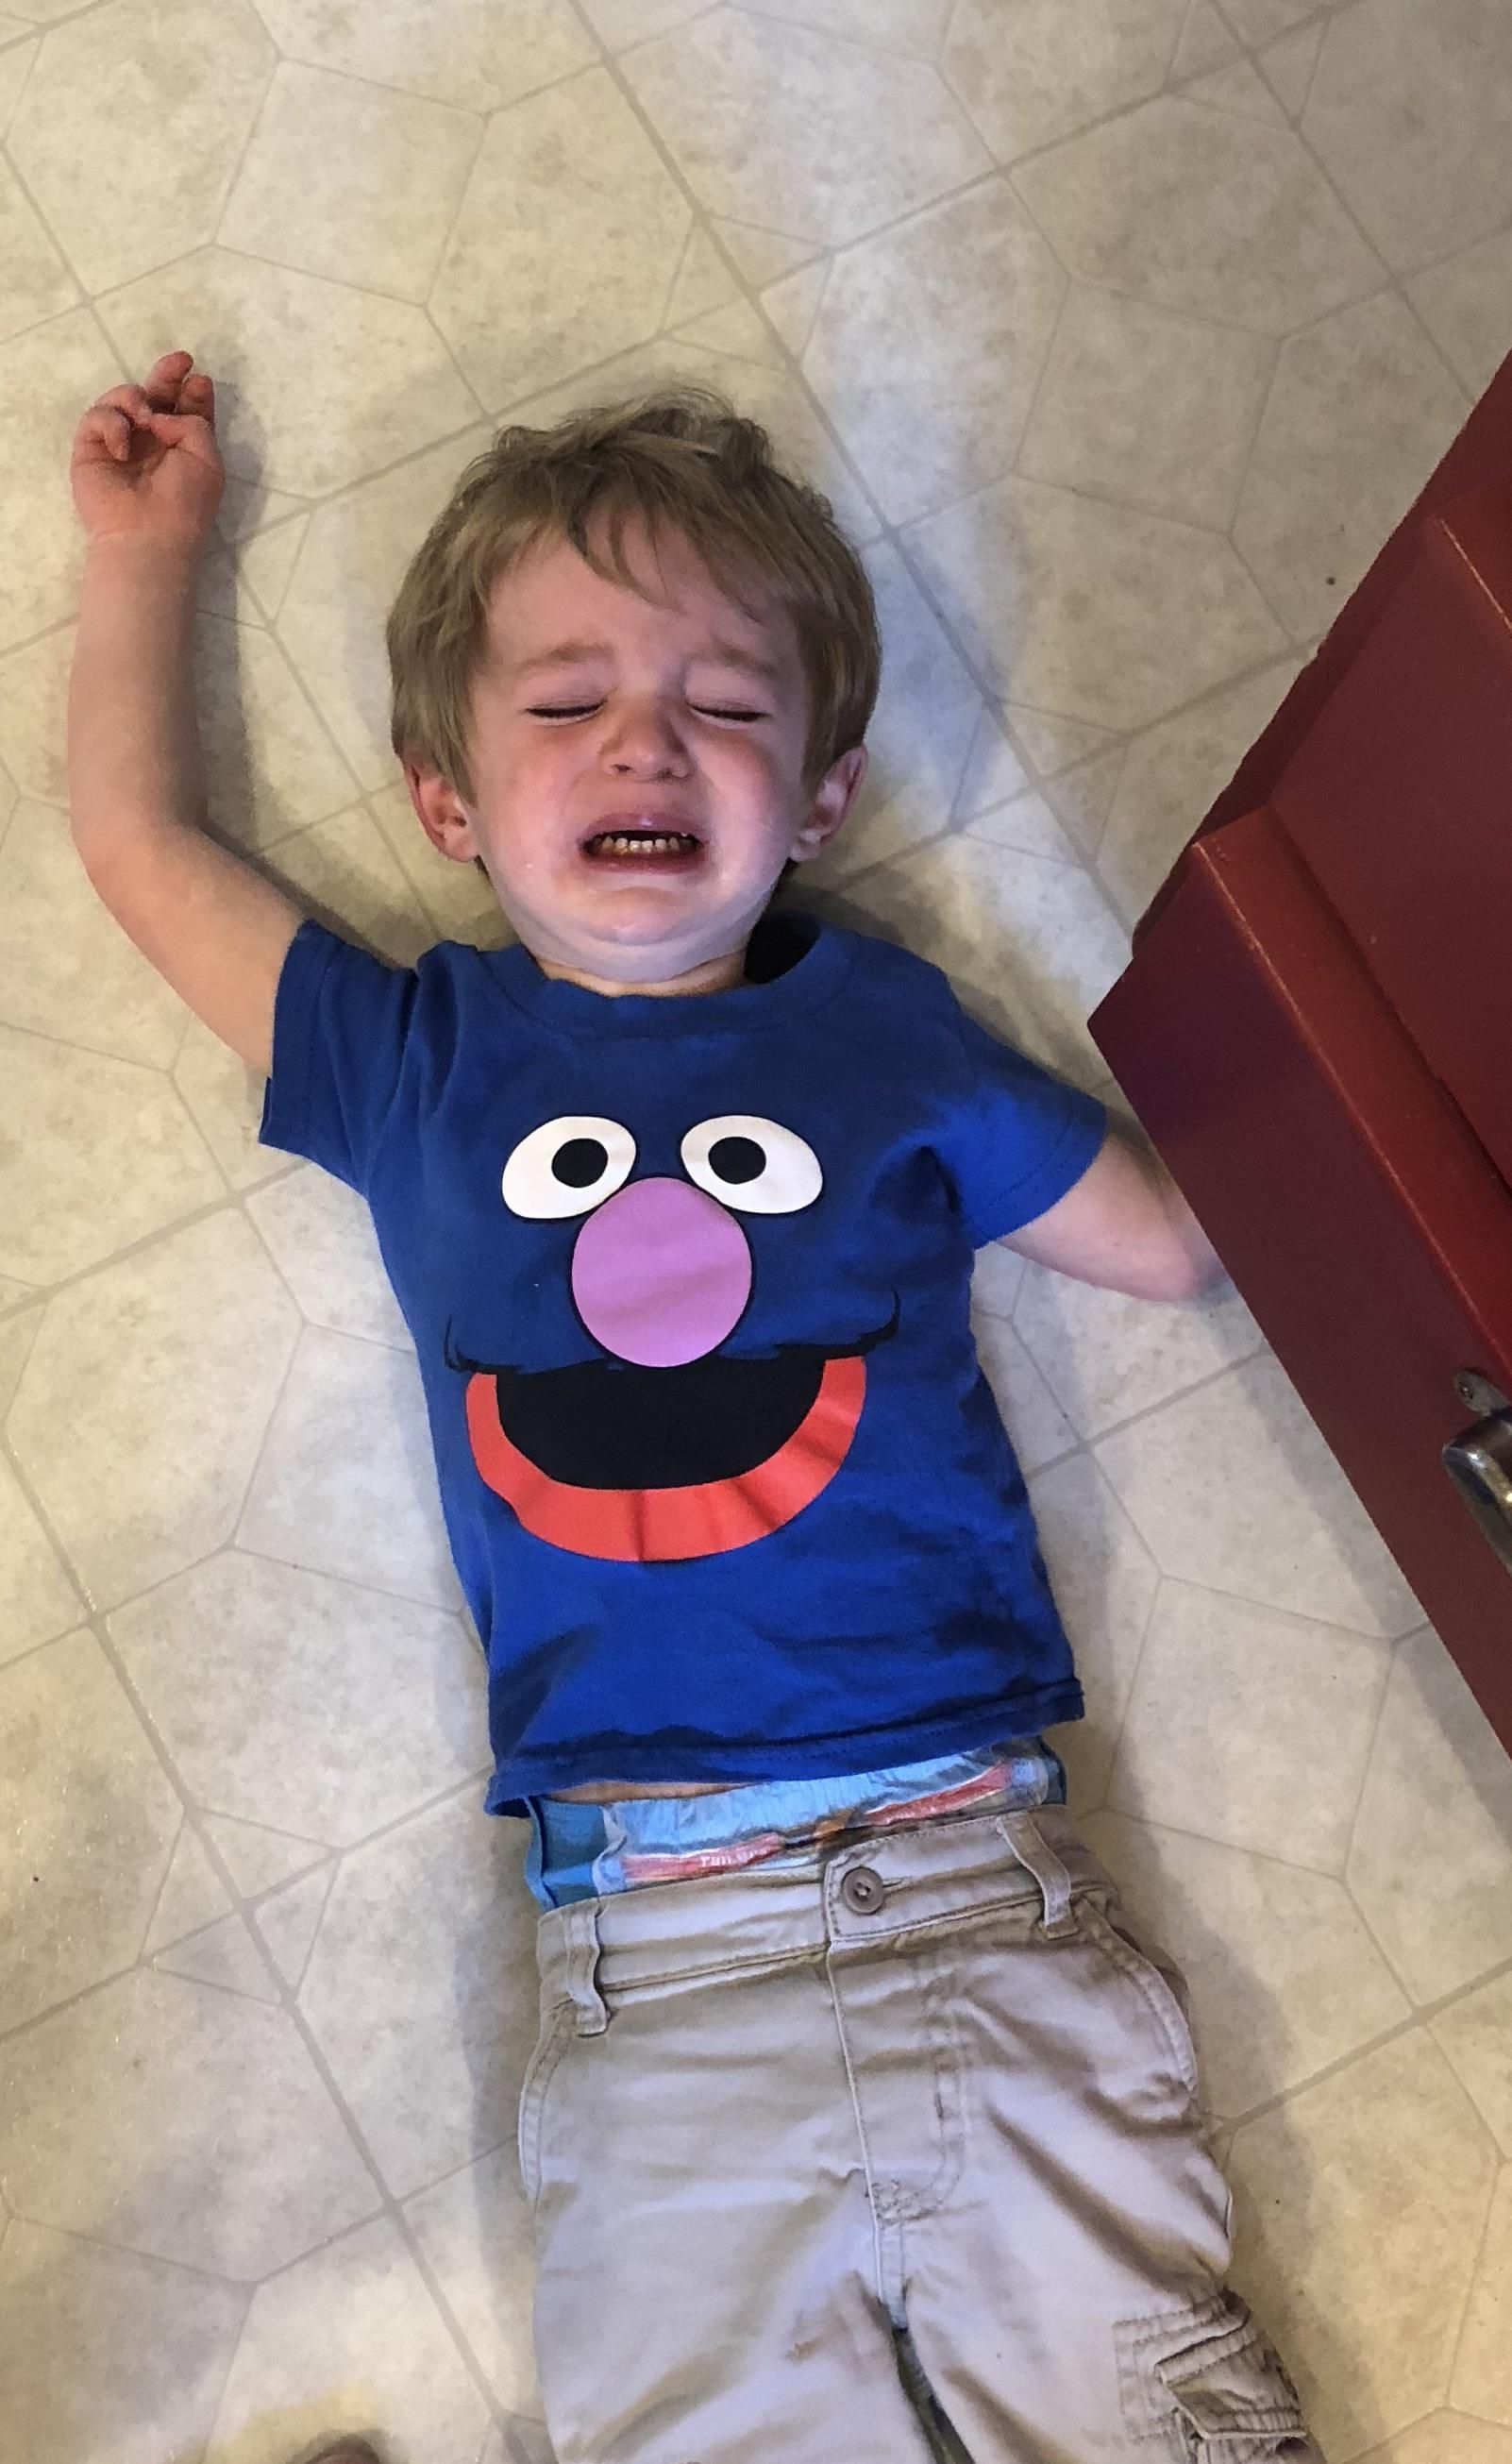 My son after being told he couldn't taste the dishwasher detergent